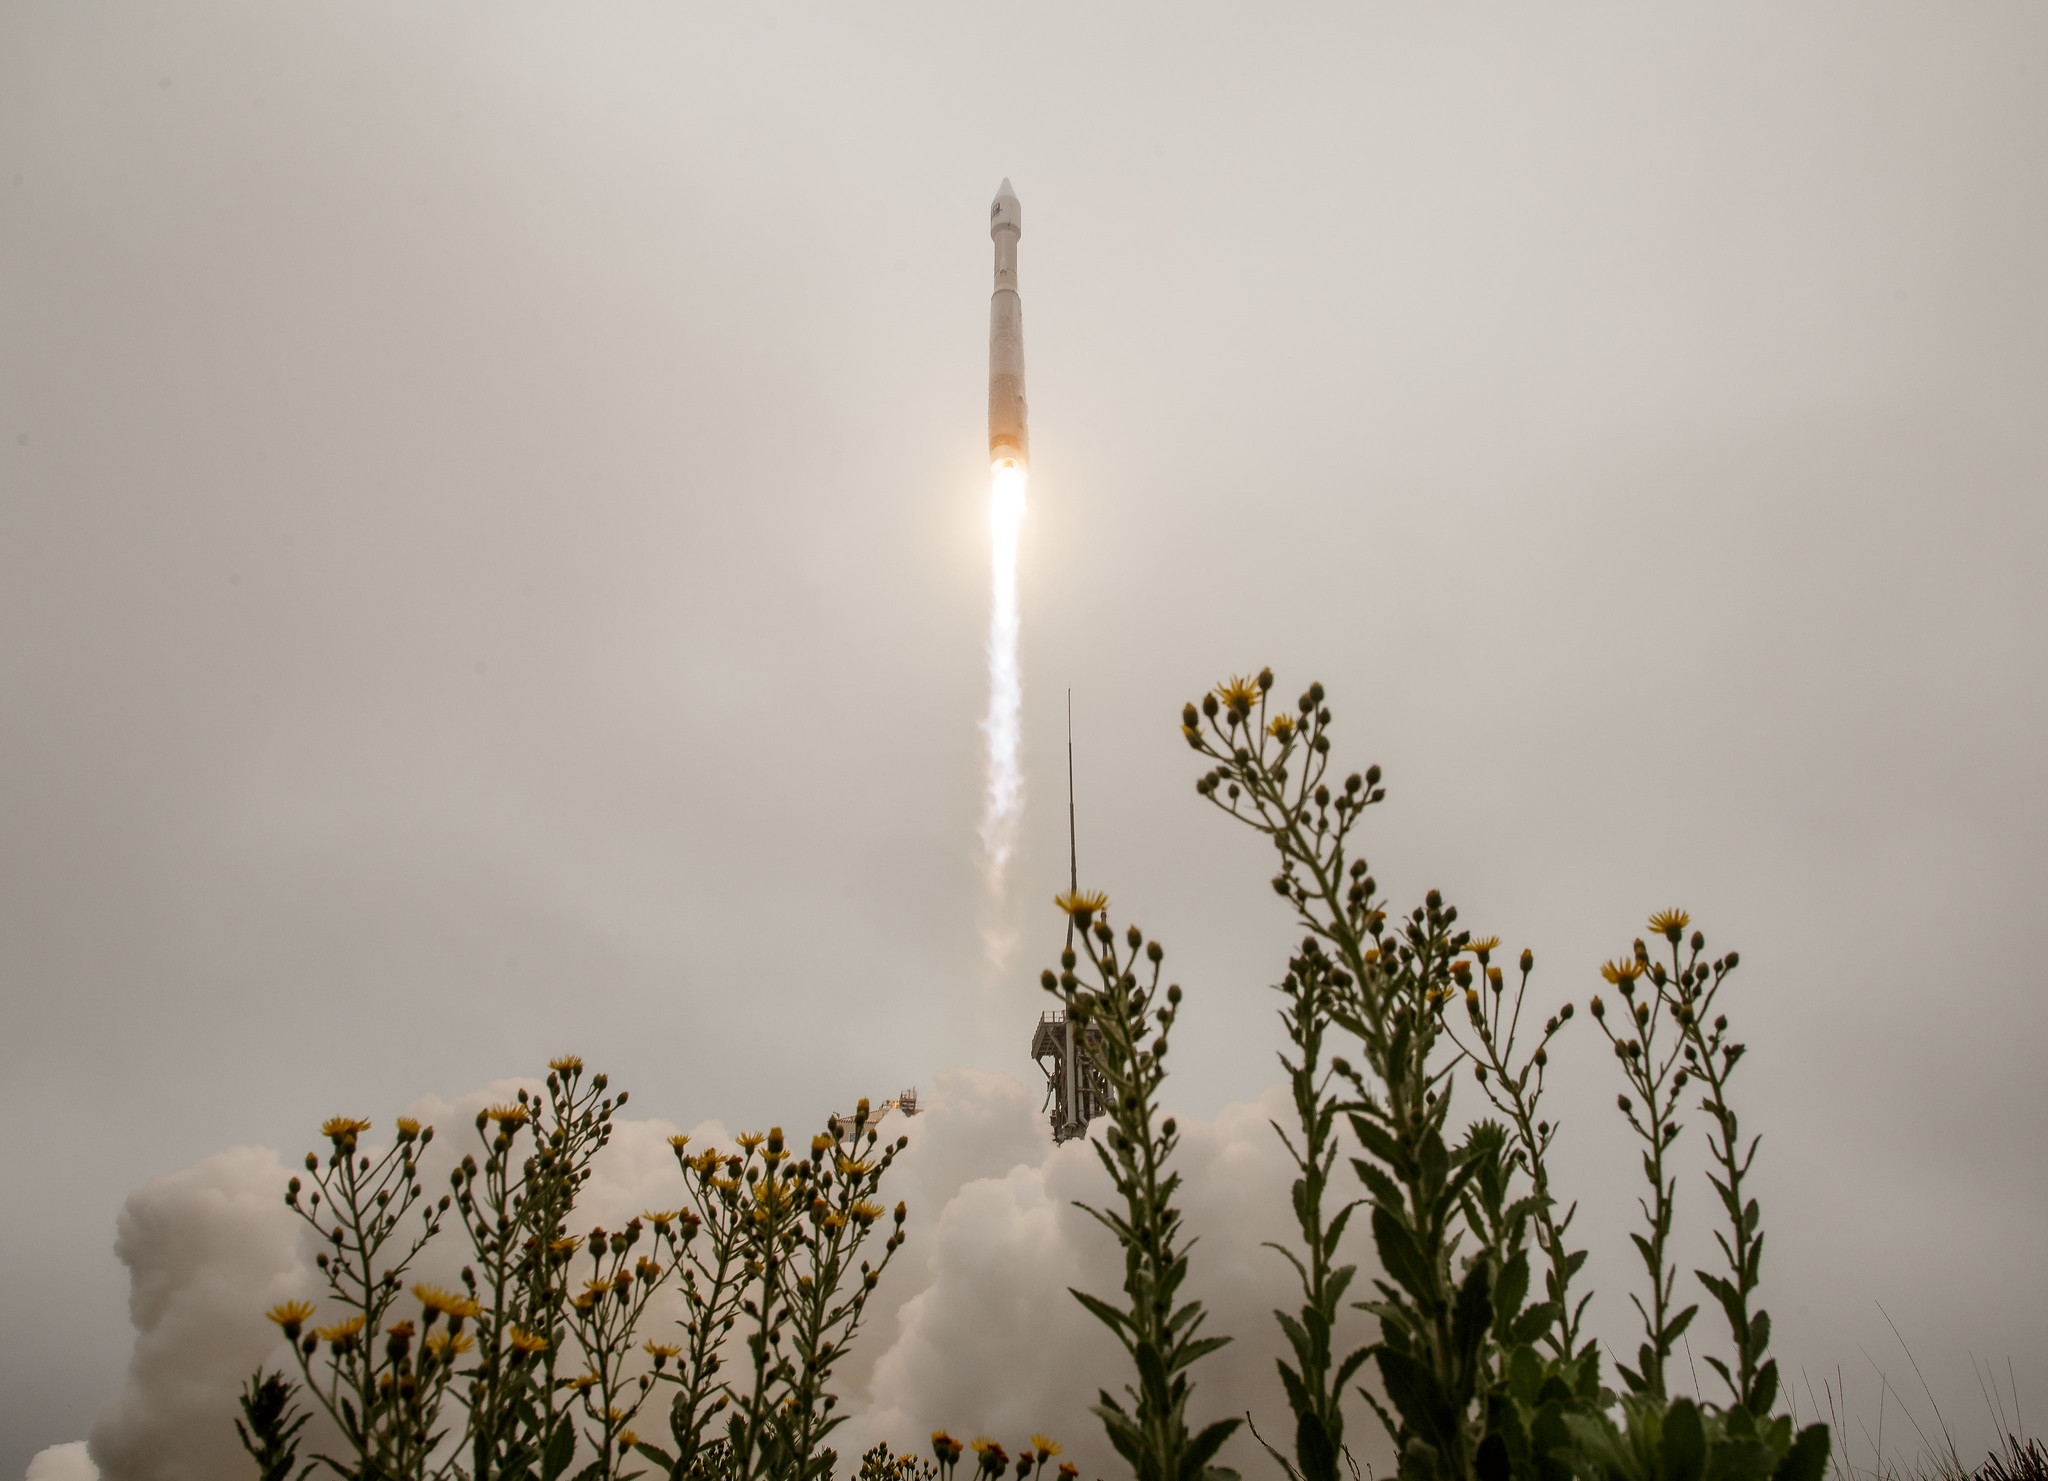 NASA Launches New Mission to Monitor Earth's Landscapes